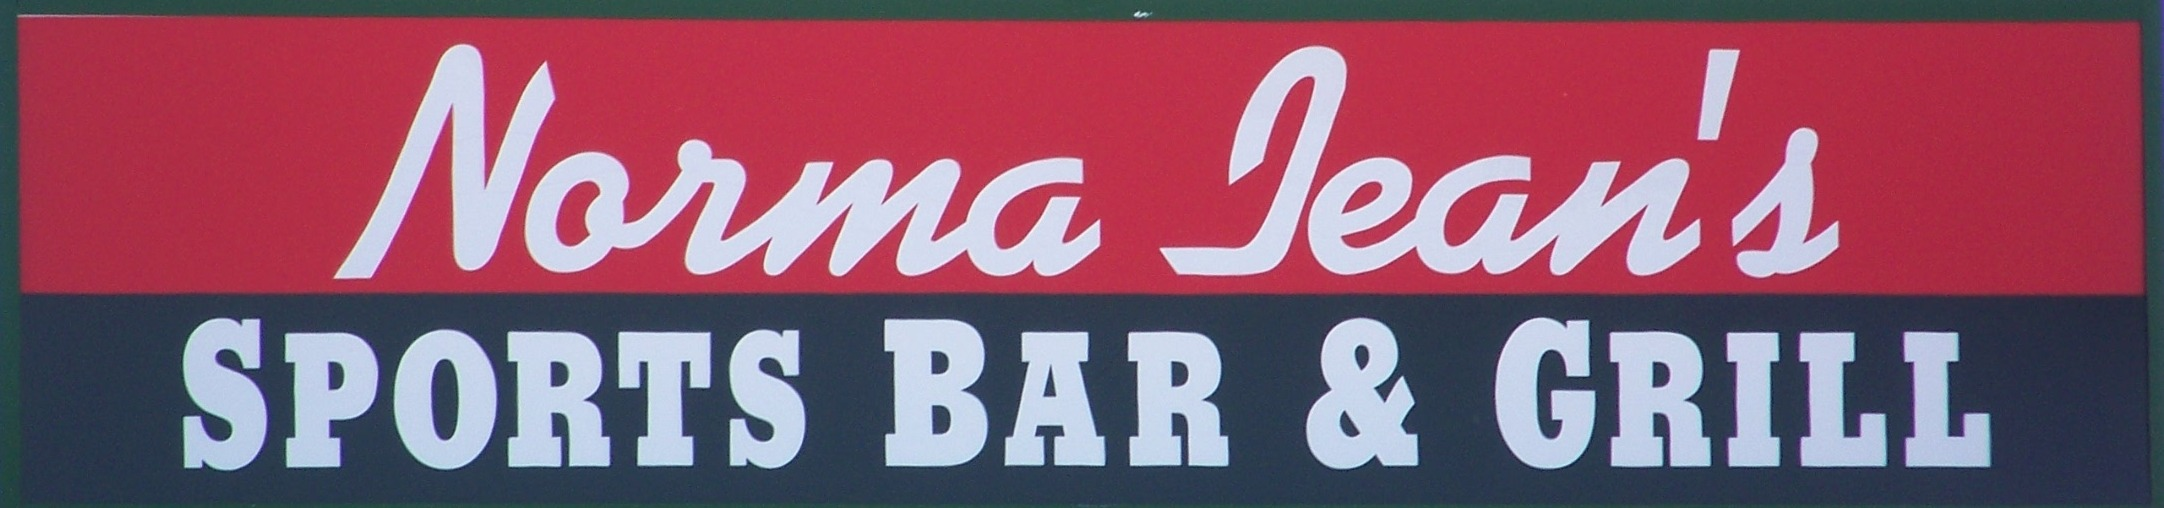 Norma Jeans Sport Grill